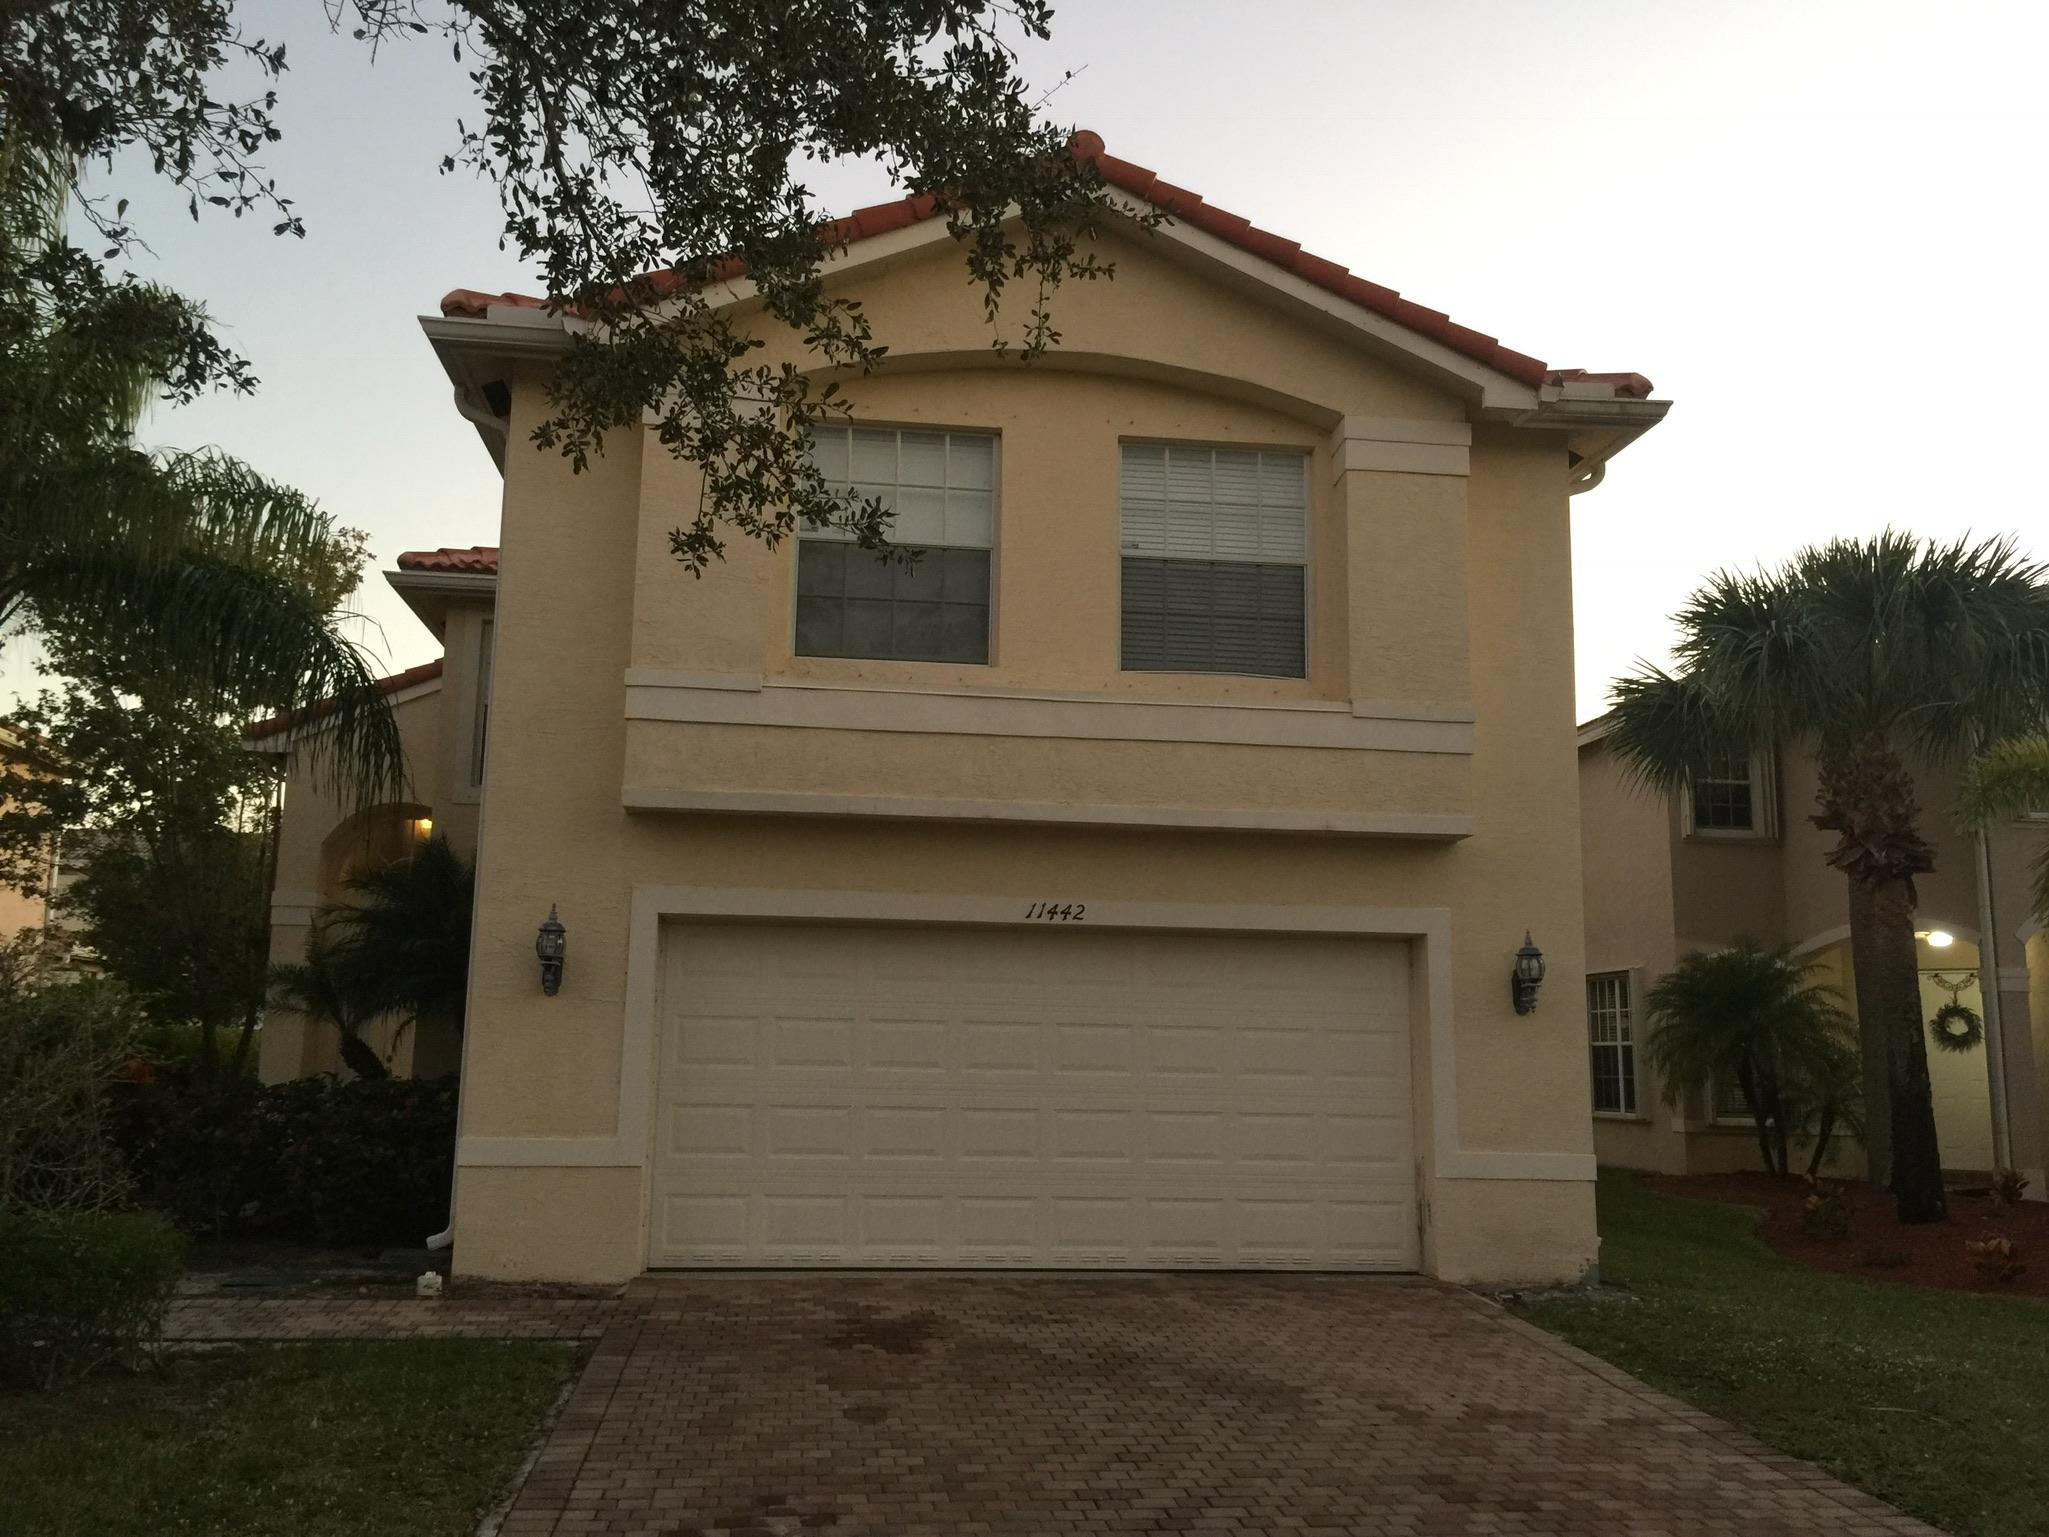 11442 S Garden Cress Trail 2 Royal Palm Beach, FL 33411